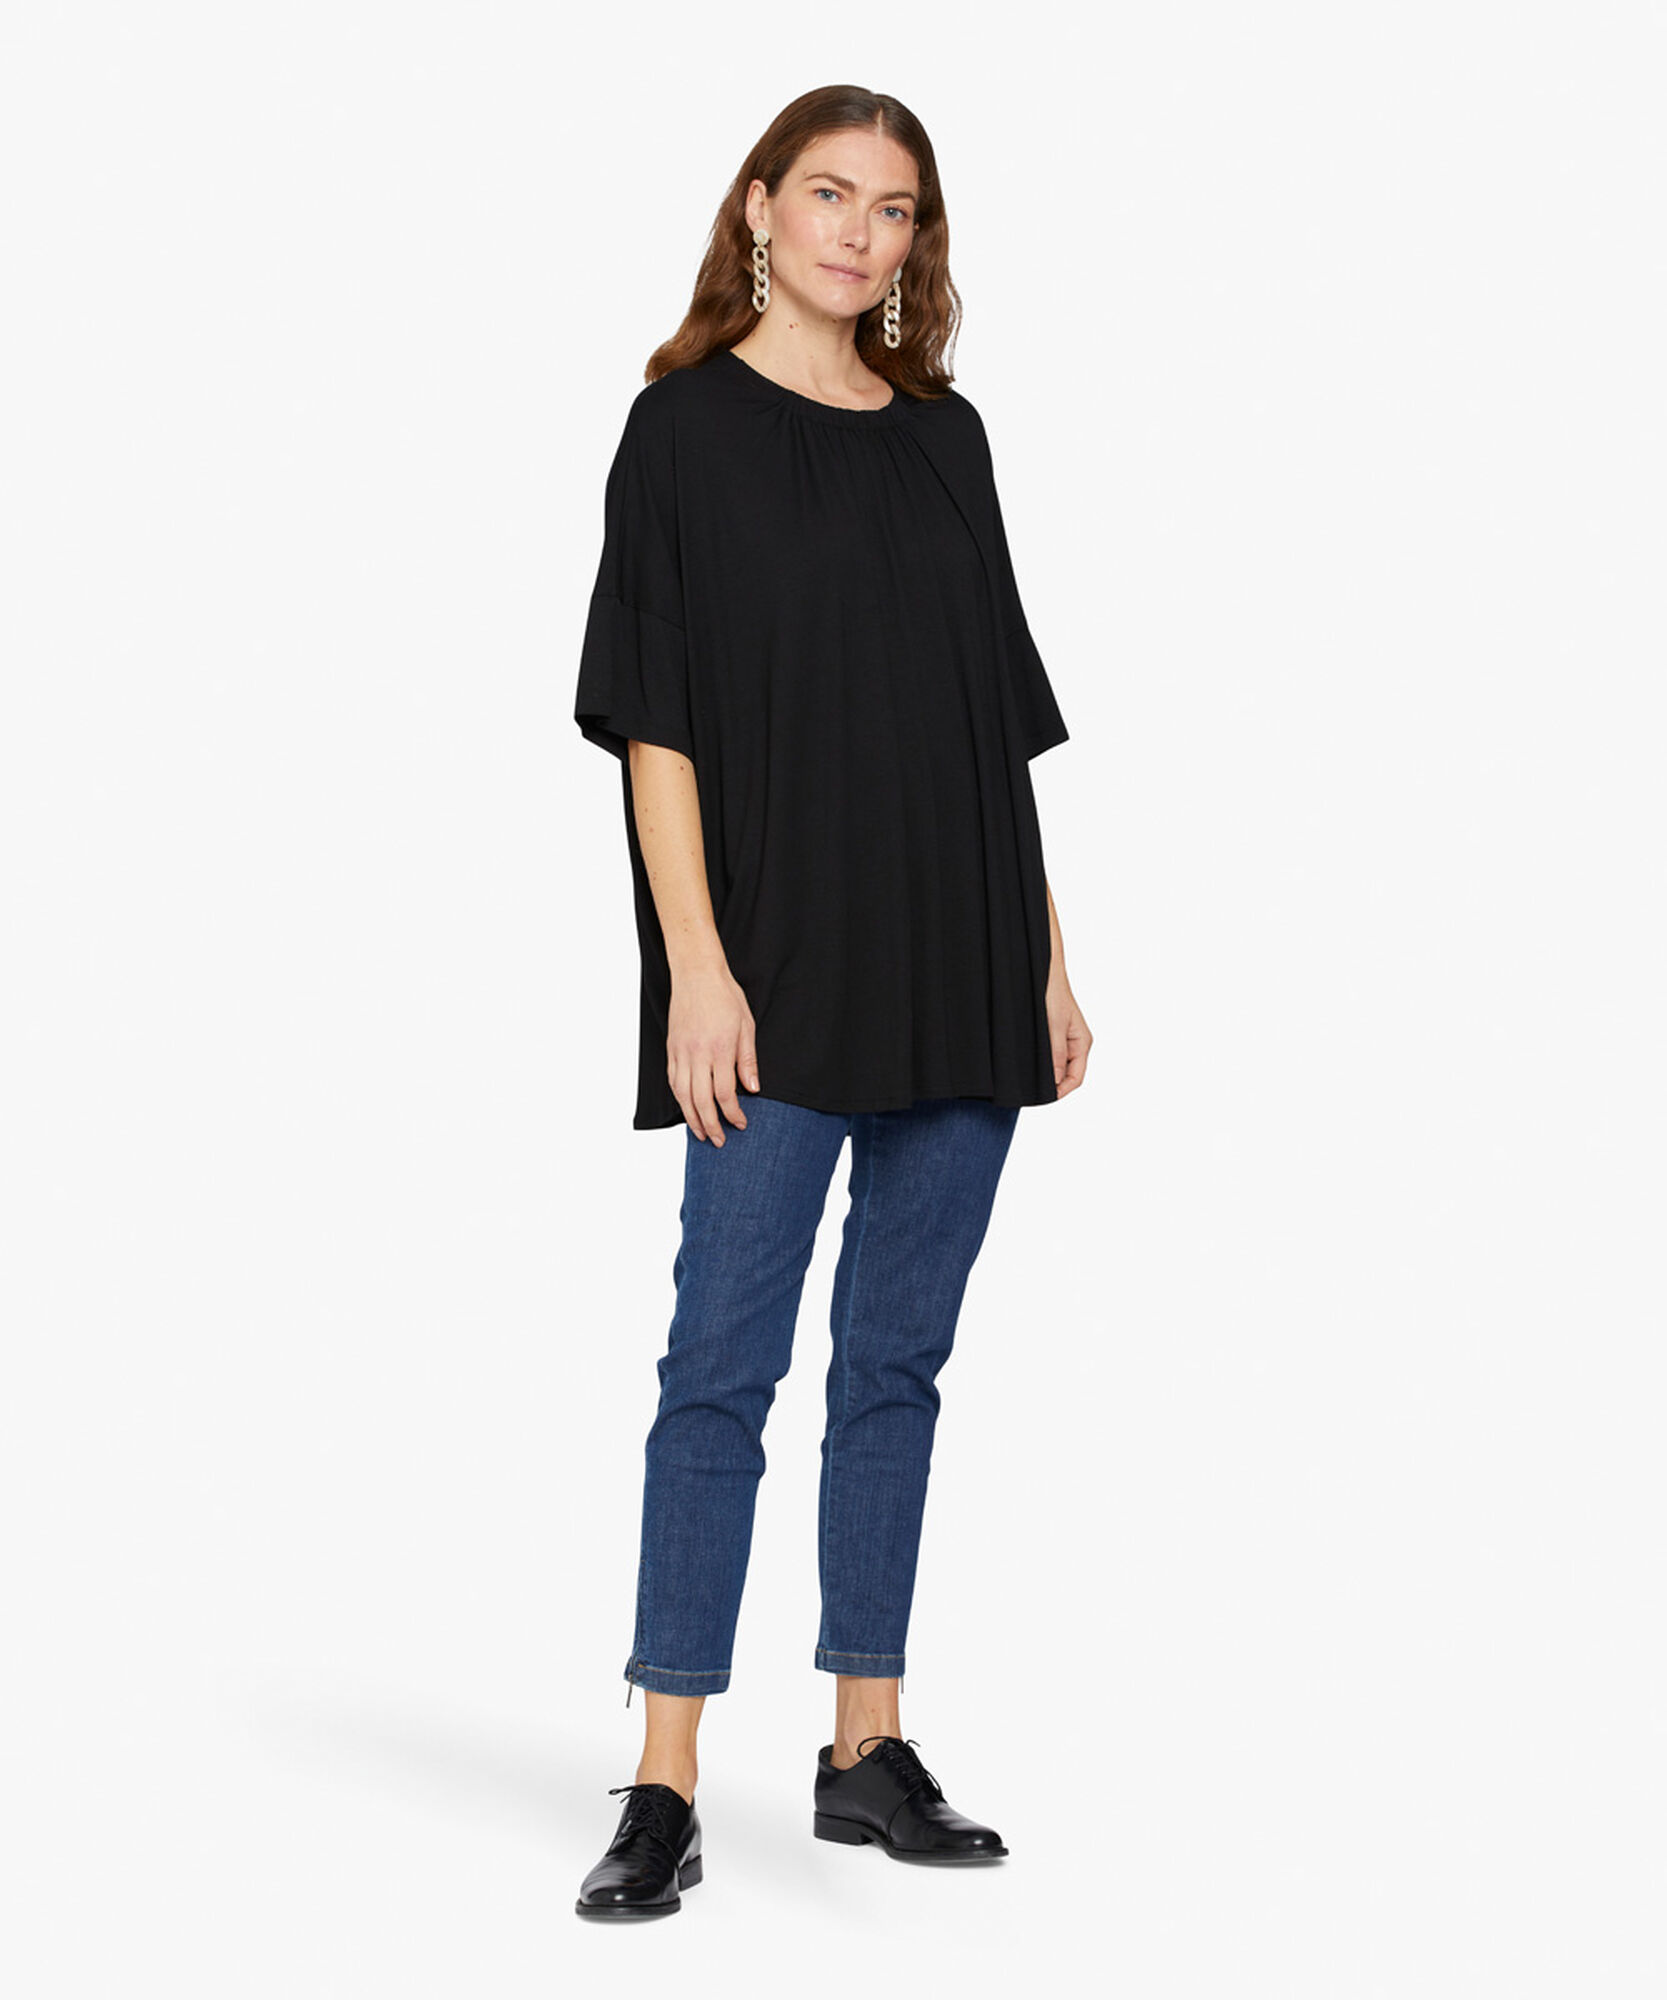 DELISA TOP, Black, hi-res